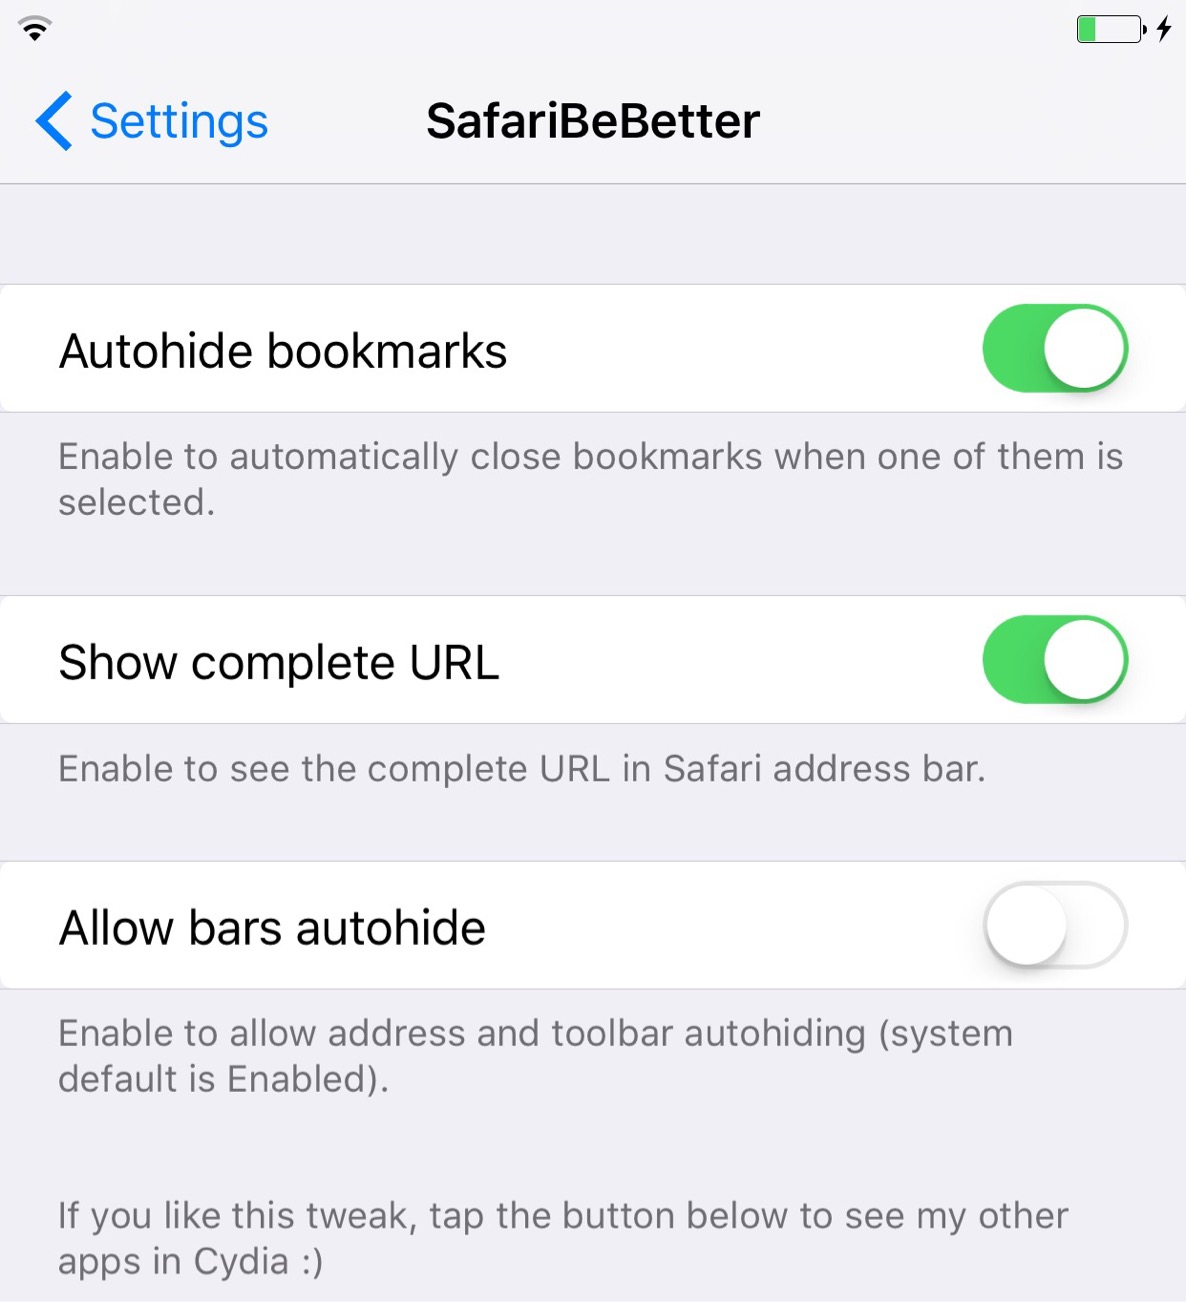 safaribebetter-settings.jpeg